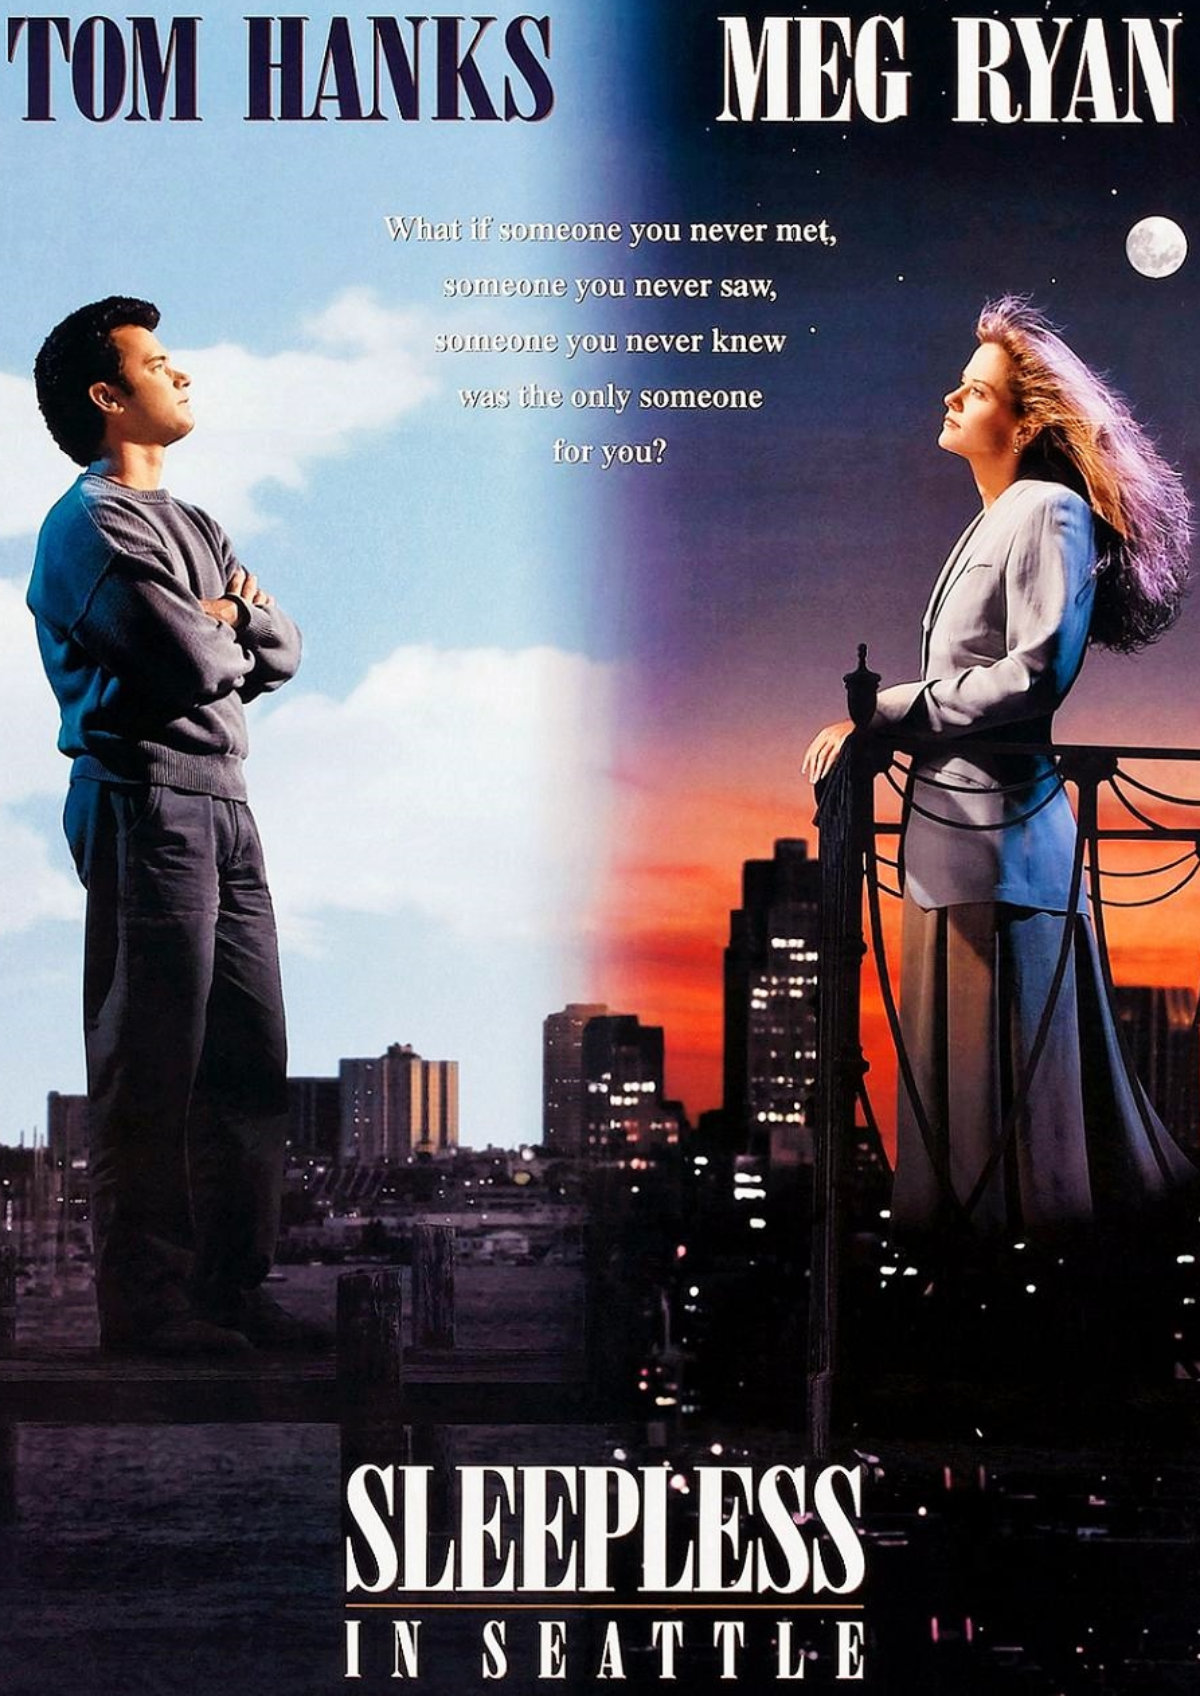 'Sleepless In Seattle' movie poster